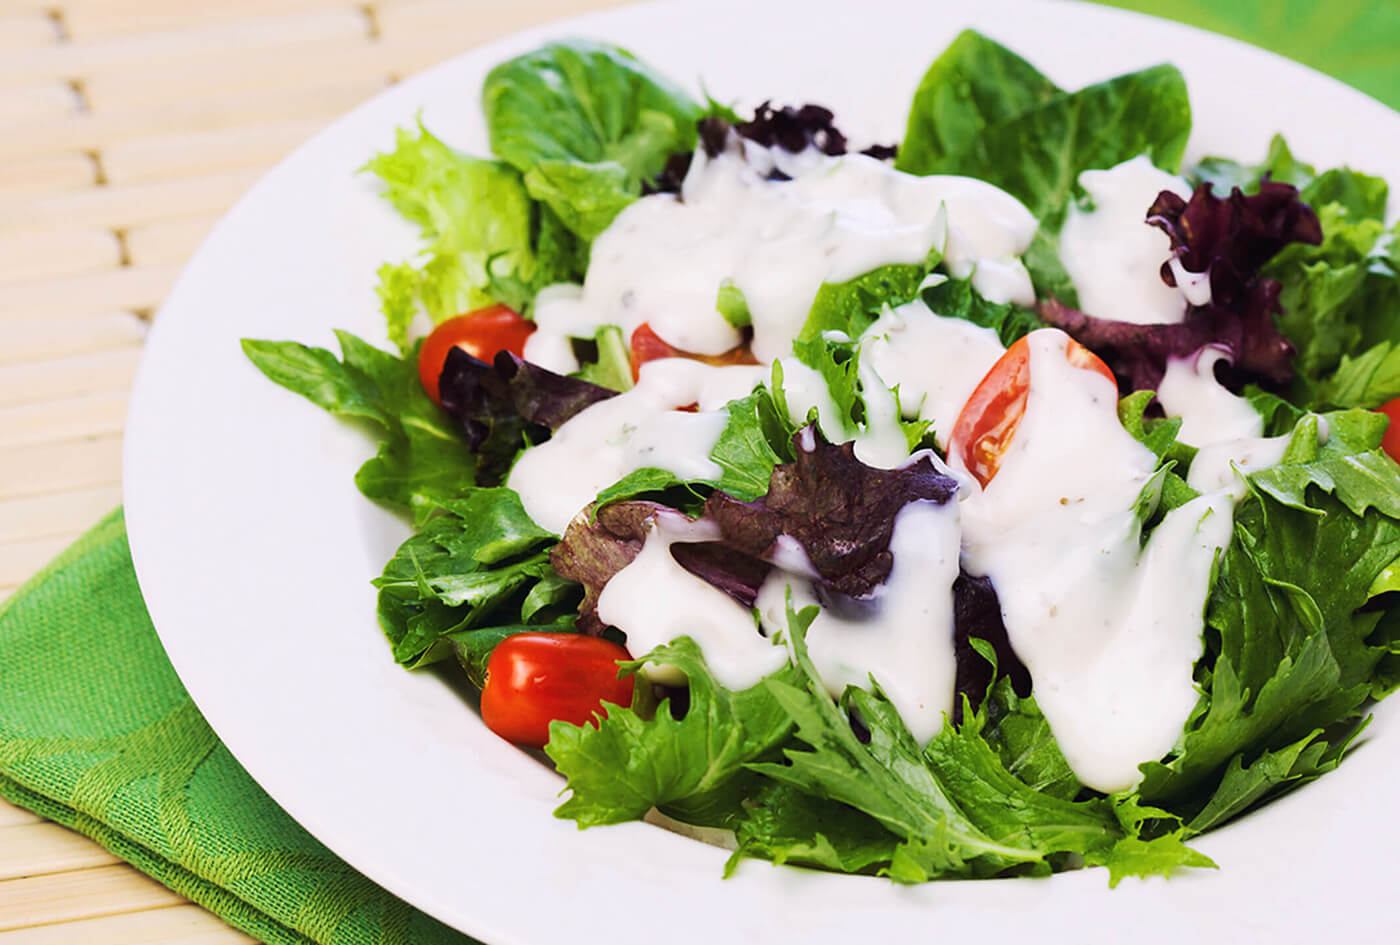 Salad dressing texture improved with Grande Bravo functional whey protein